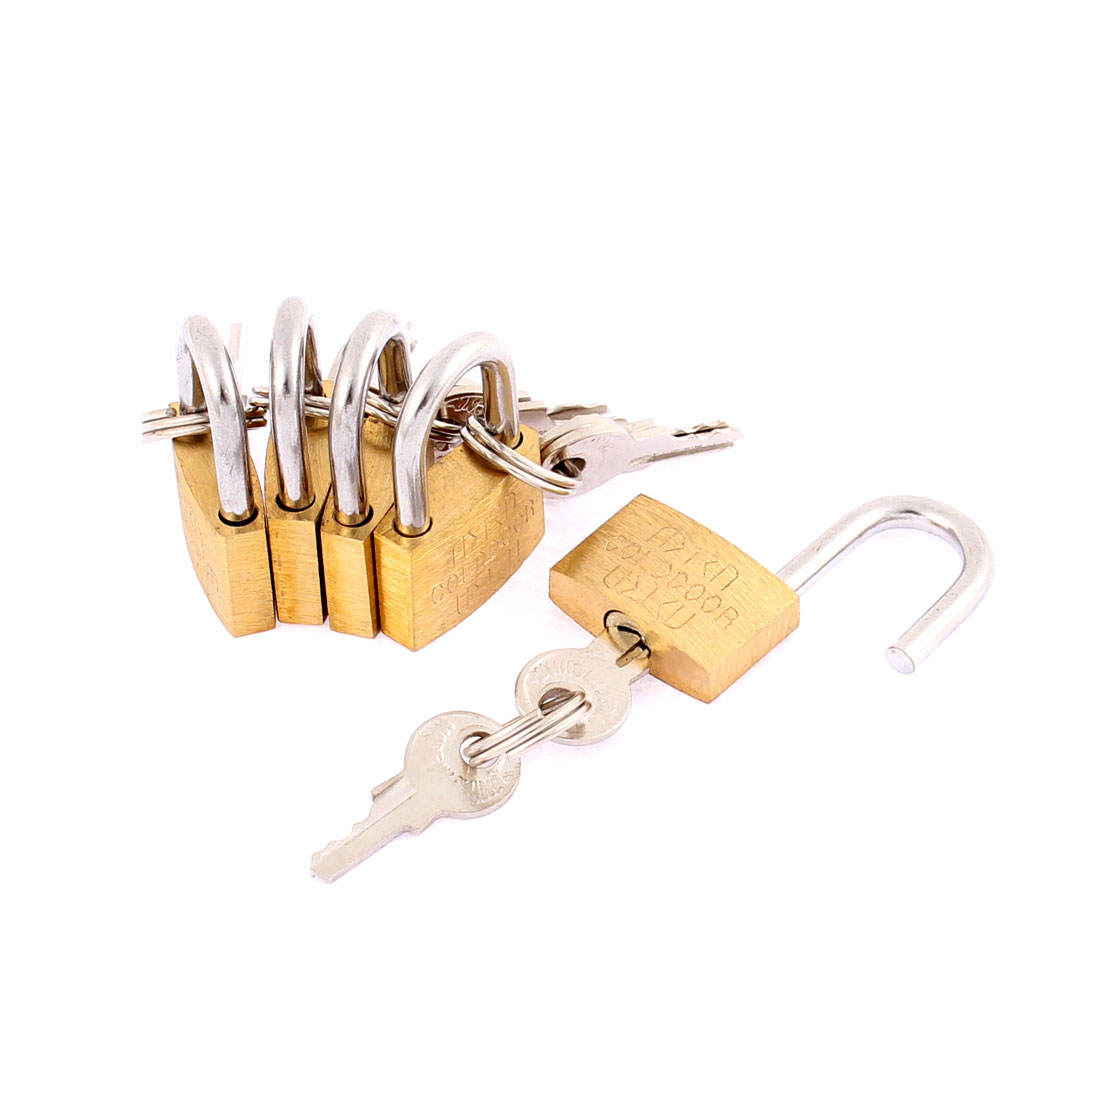 Cabinet Door Locking Security Padlock Lock Brass Tone 5pcs w Keys